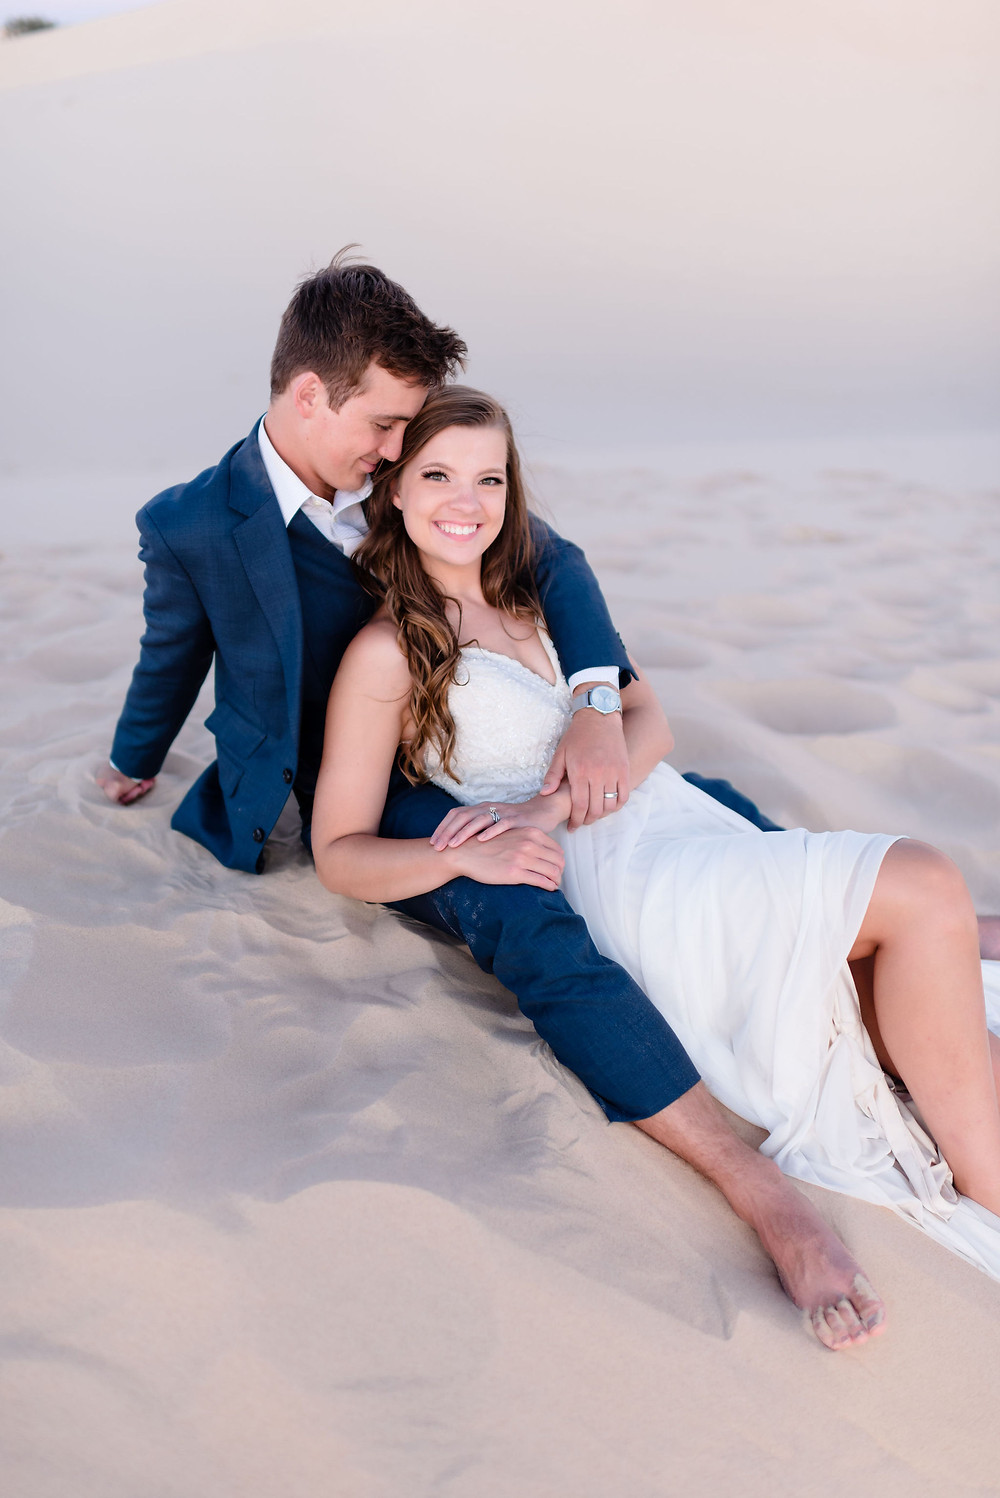 girl sits in between guy's legs. guy's face is down, facing the side of her head. she is smiling at the camera.